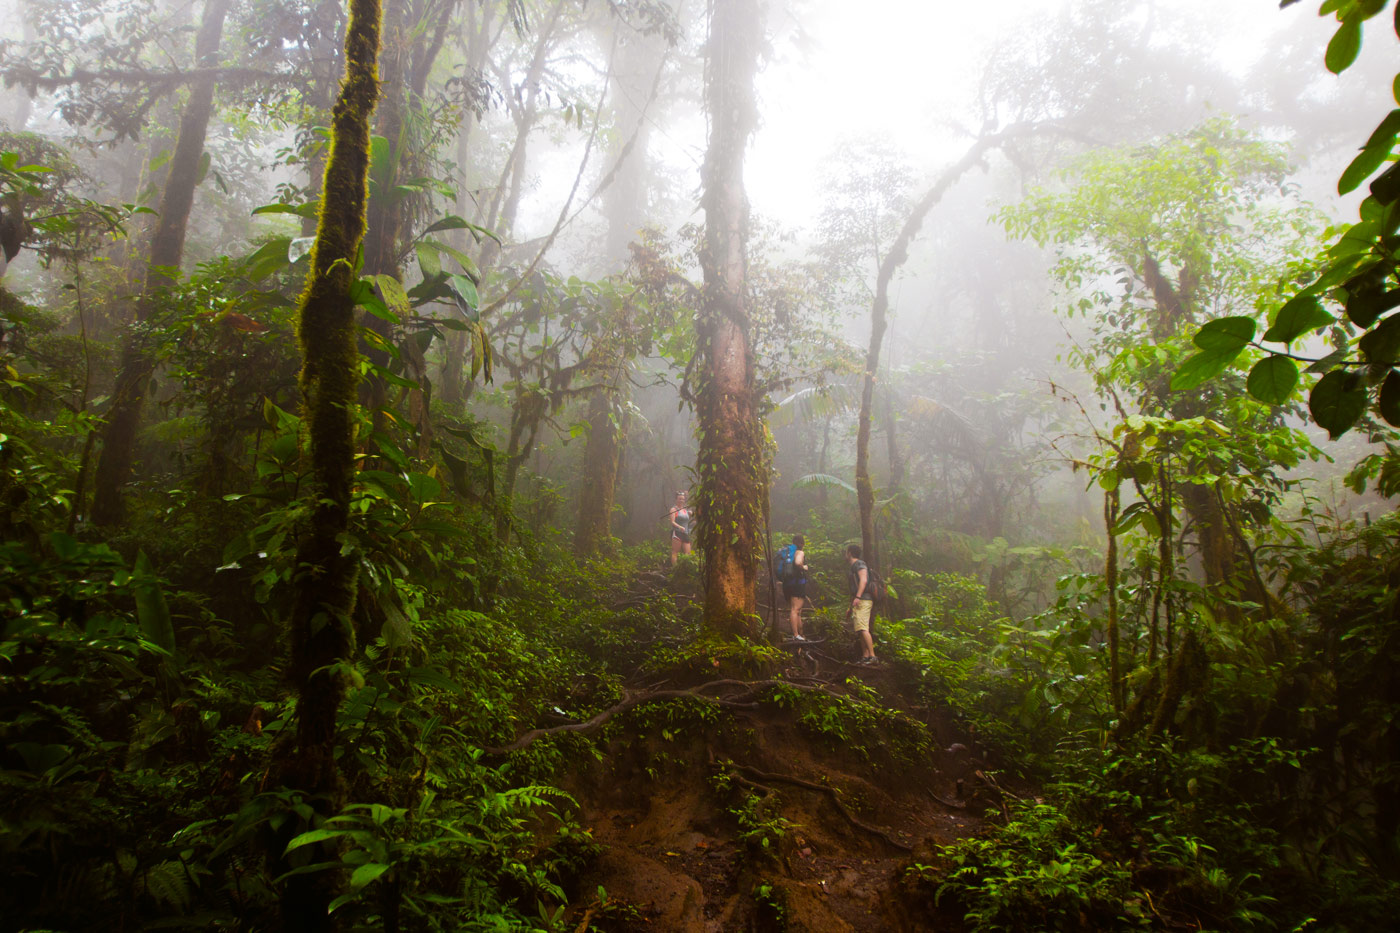 Nick-Zantop-Photography-Rainforest-7